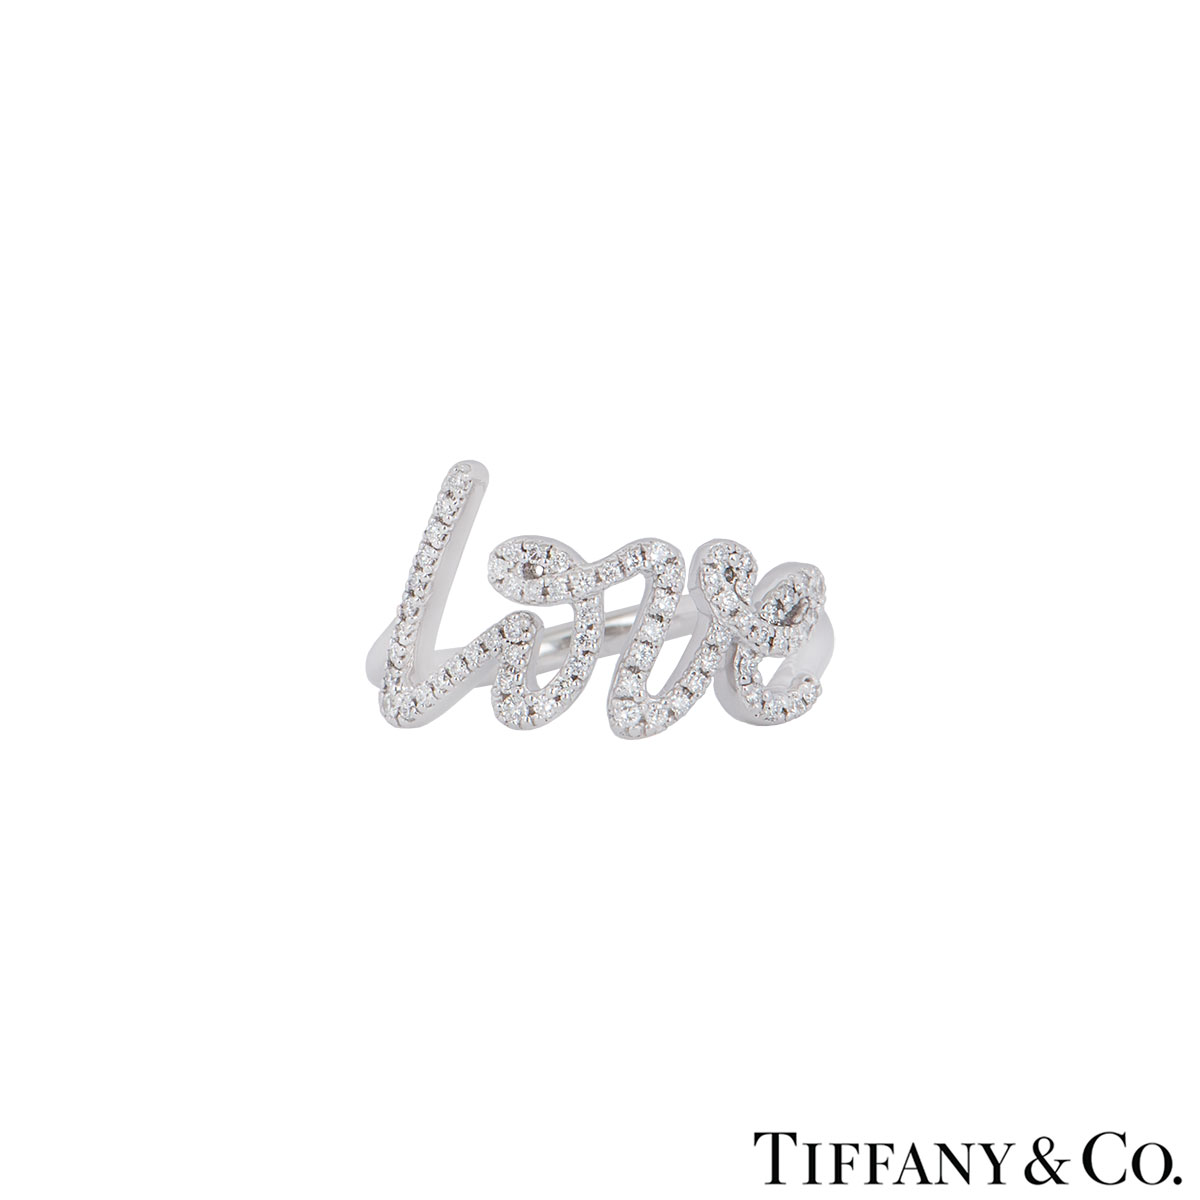 Tiffany & Co. White Gold Diamond Paloma Picasso Love Ring